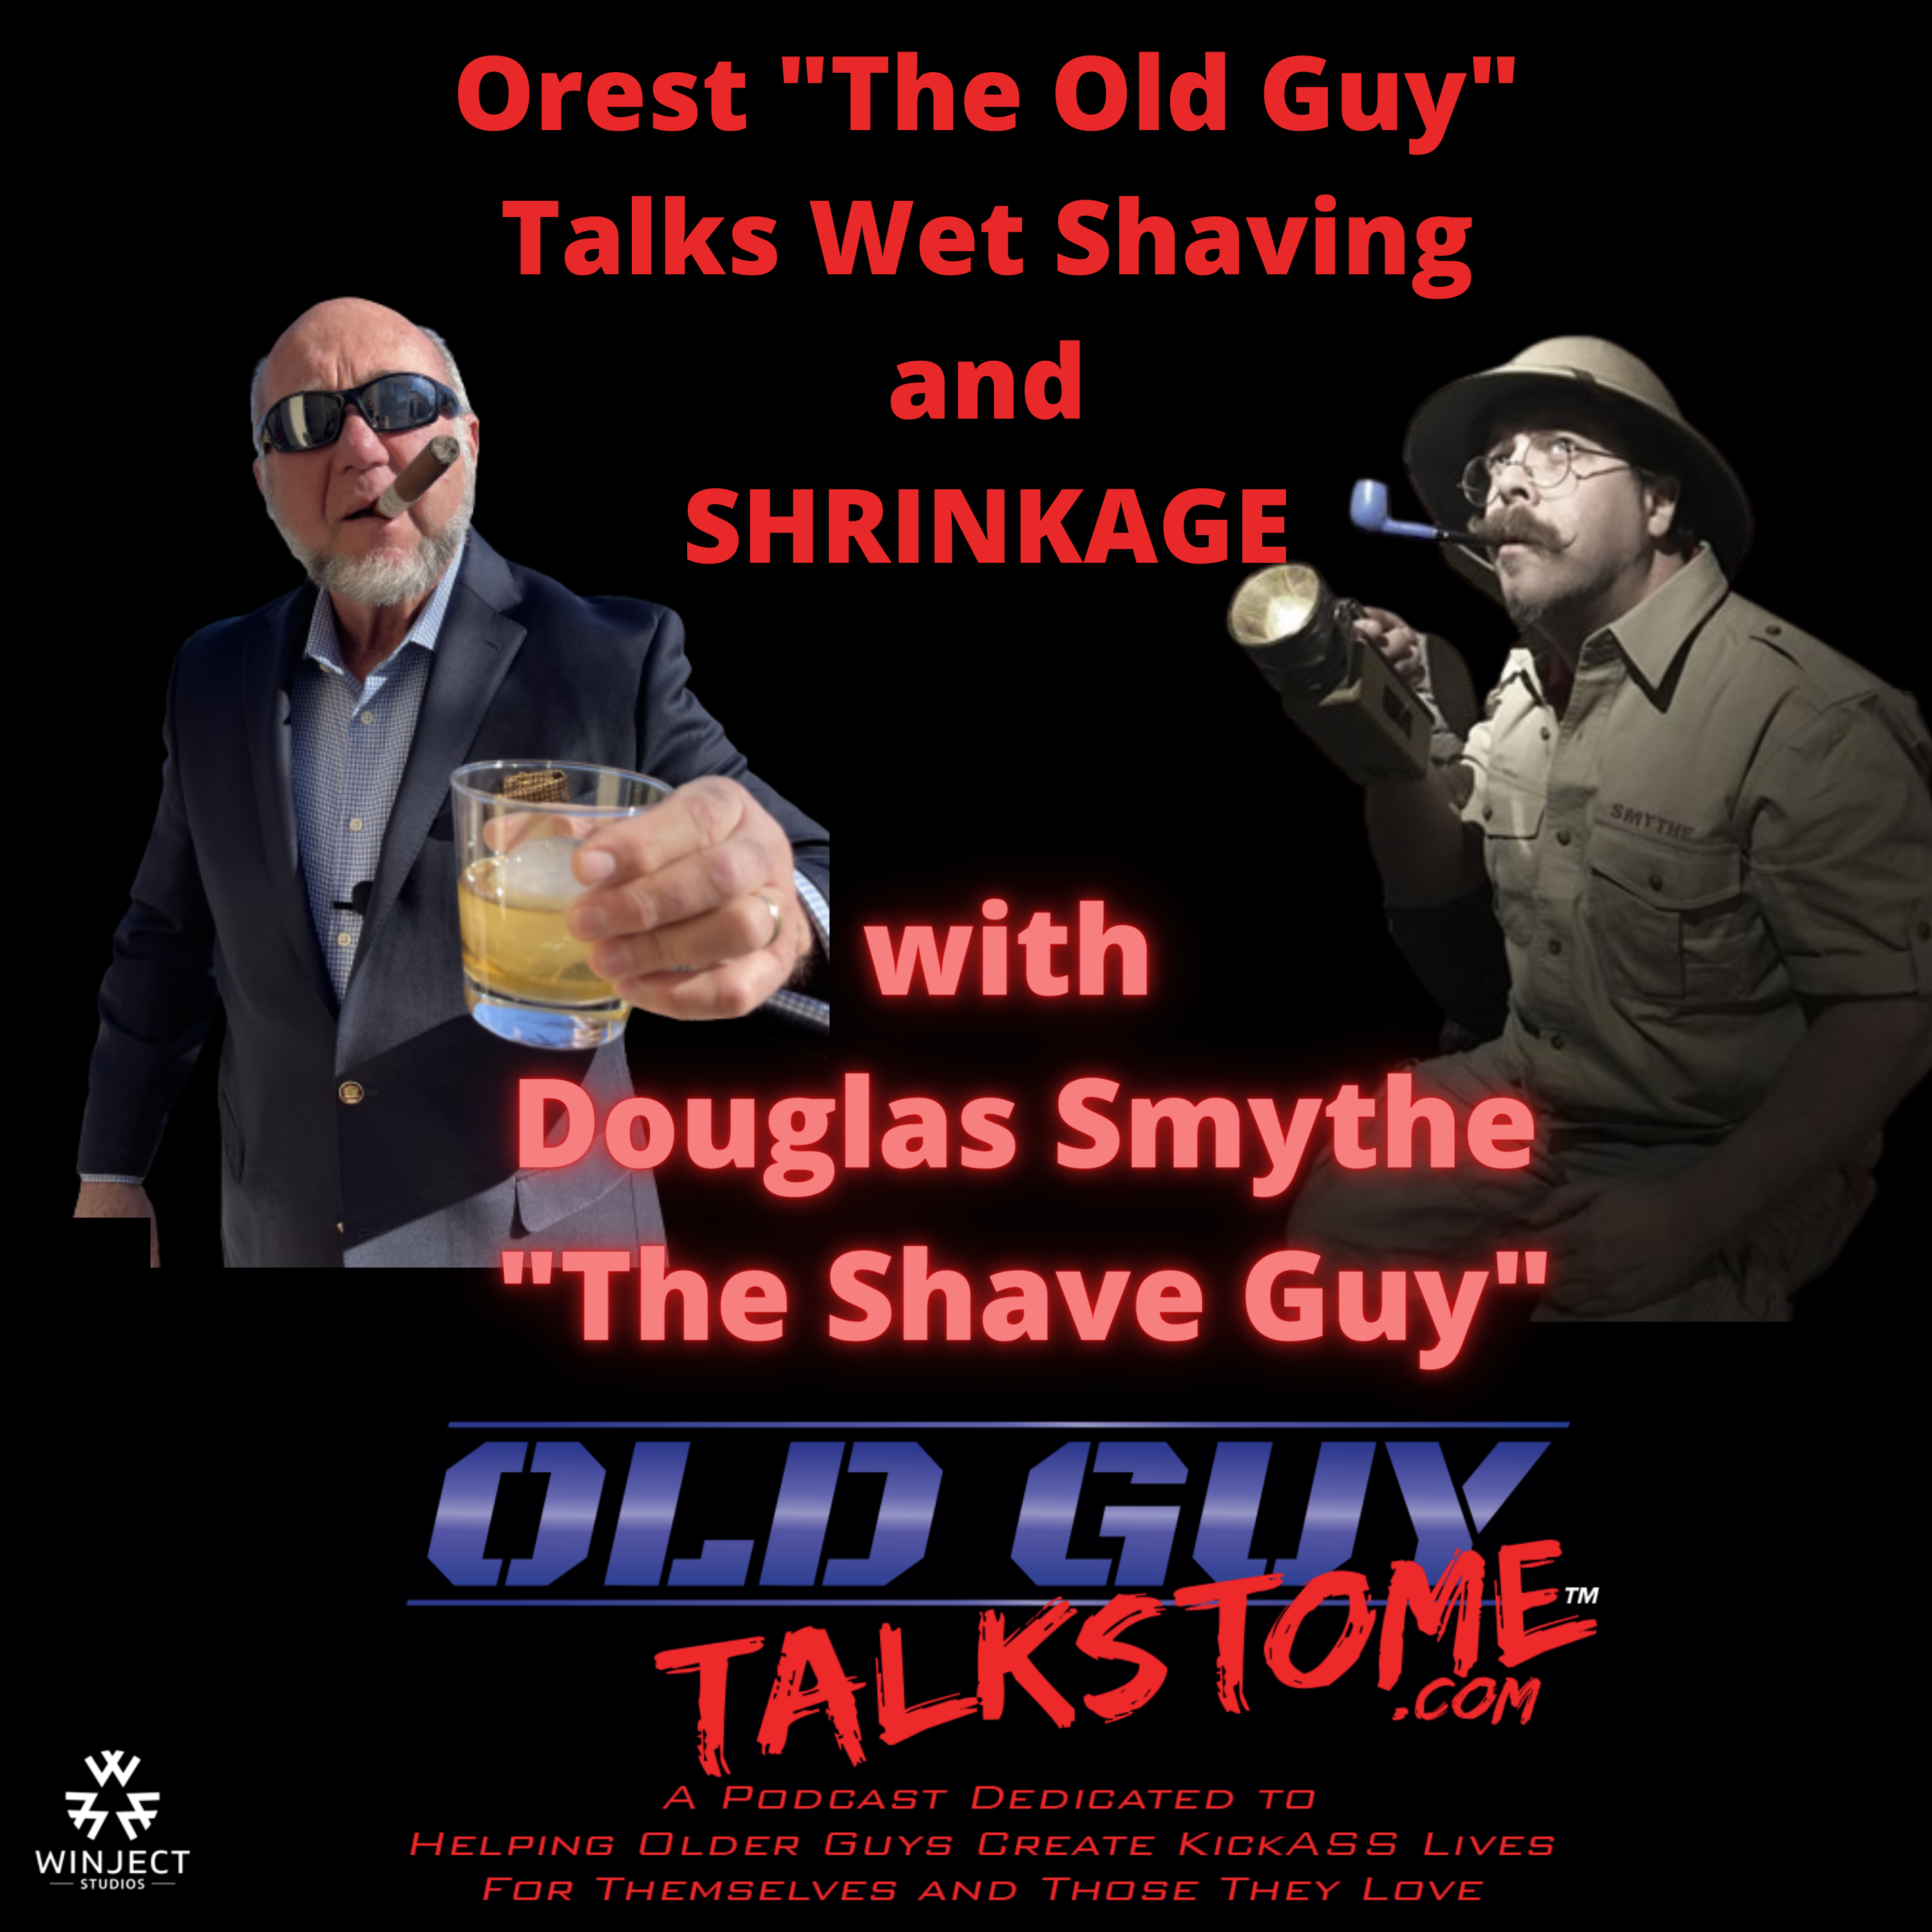 OldGuyTalksToMe - The Old Guy Talks Wet Shaving and SHRINKAGE with Douglas Smythe